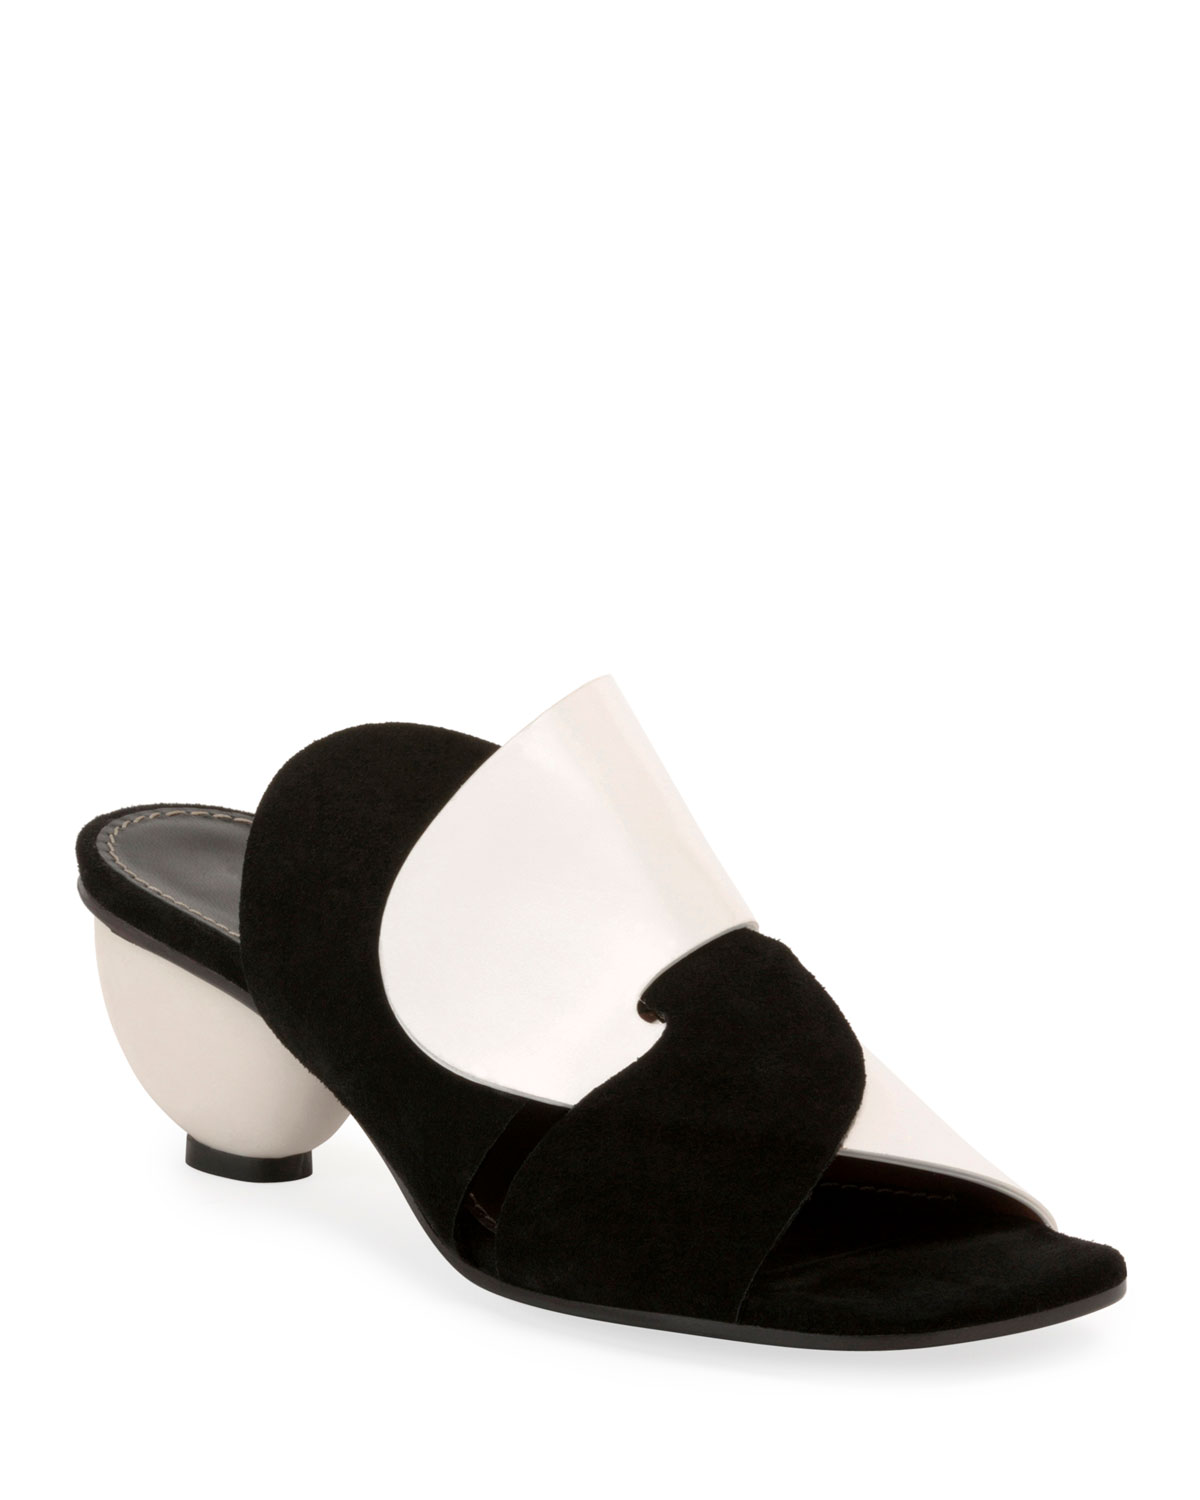 Suede and Leather Ball-Heel Slide Sandals